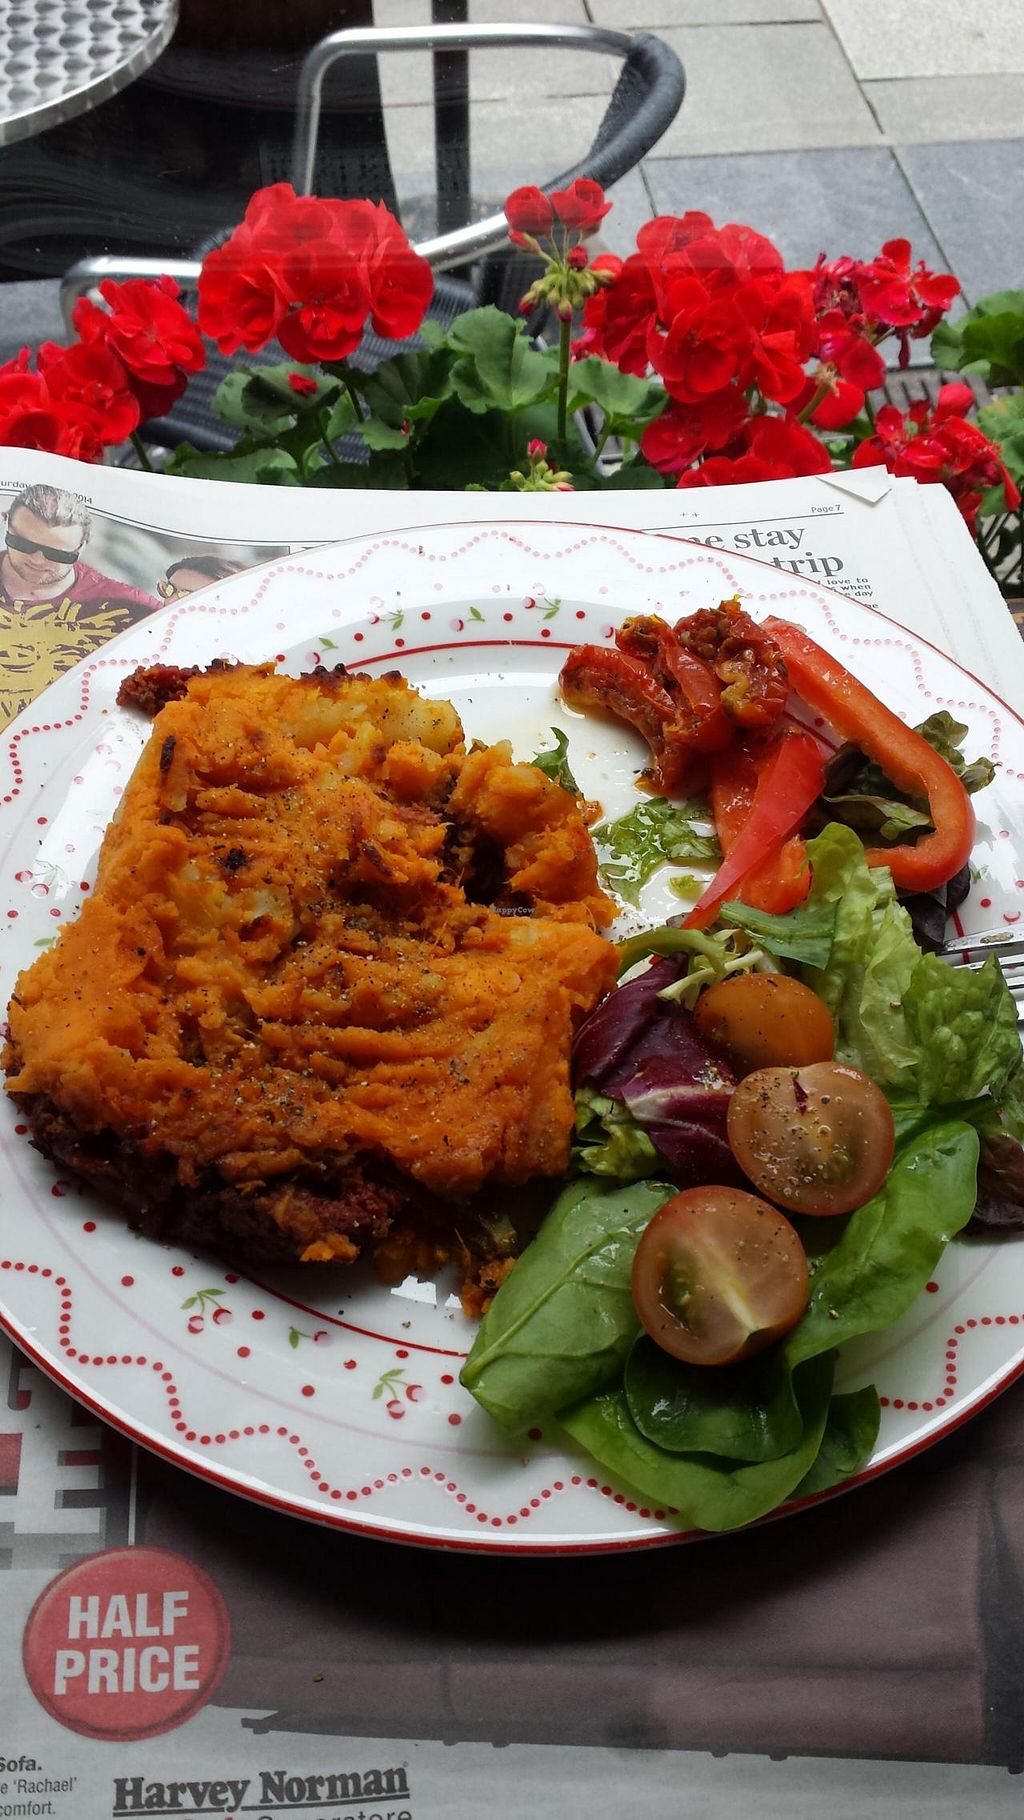 """Photo of Food for Thought  by <a href=""""/members/profile/OttVanTor"""">OttVanTor</a> <br/>vegan shepherds pie <br/> June 15, 2014  - <a href='/contact/abuse/image/6877/72058'>Report</a>"""